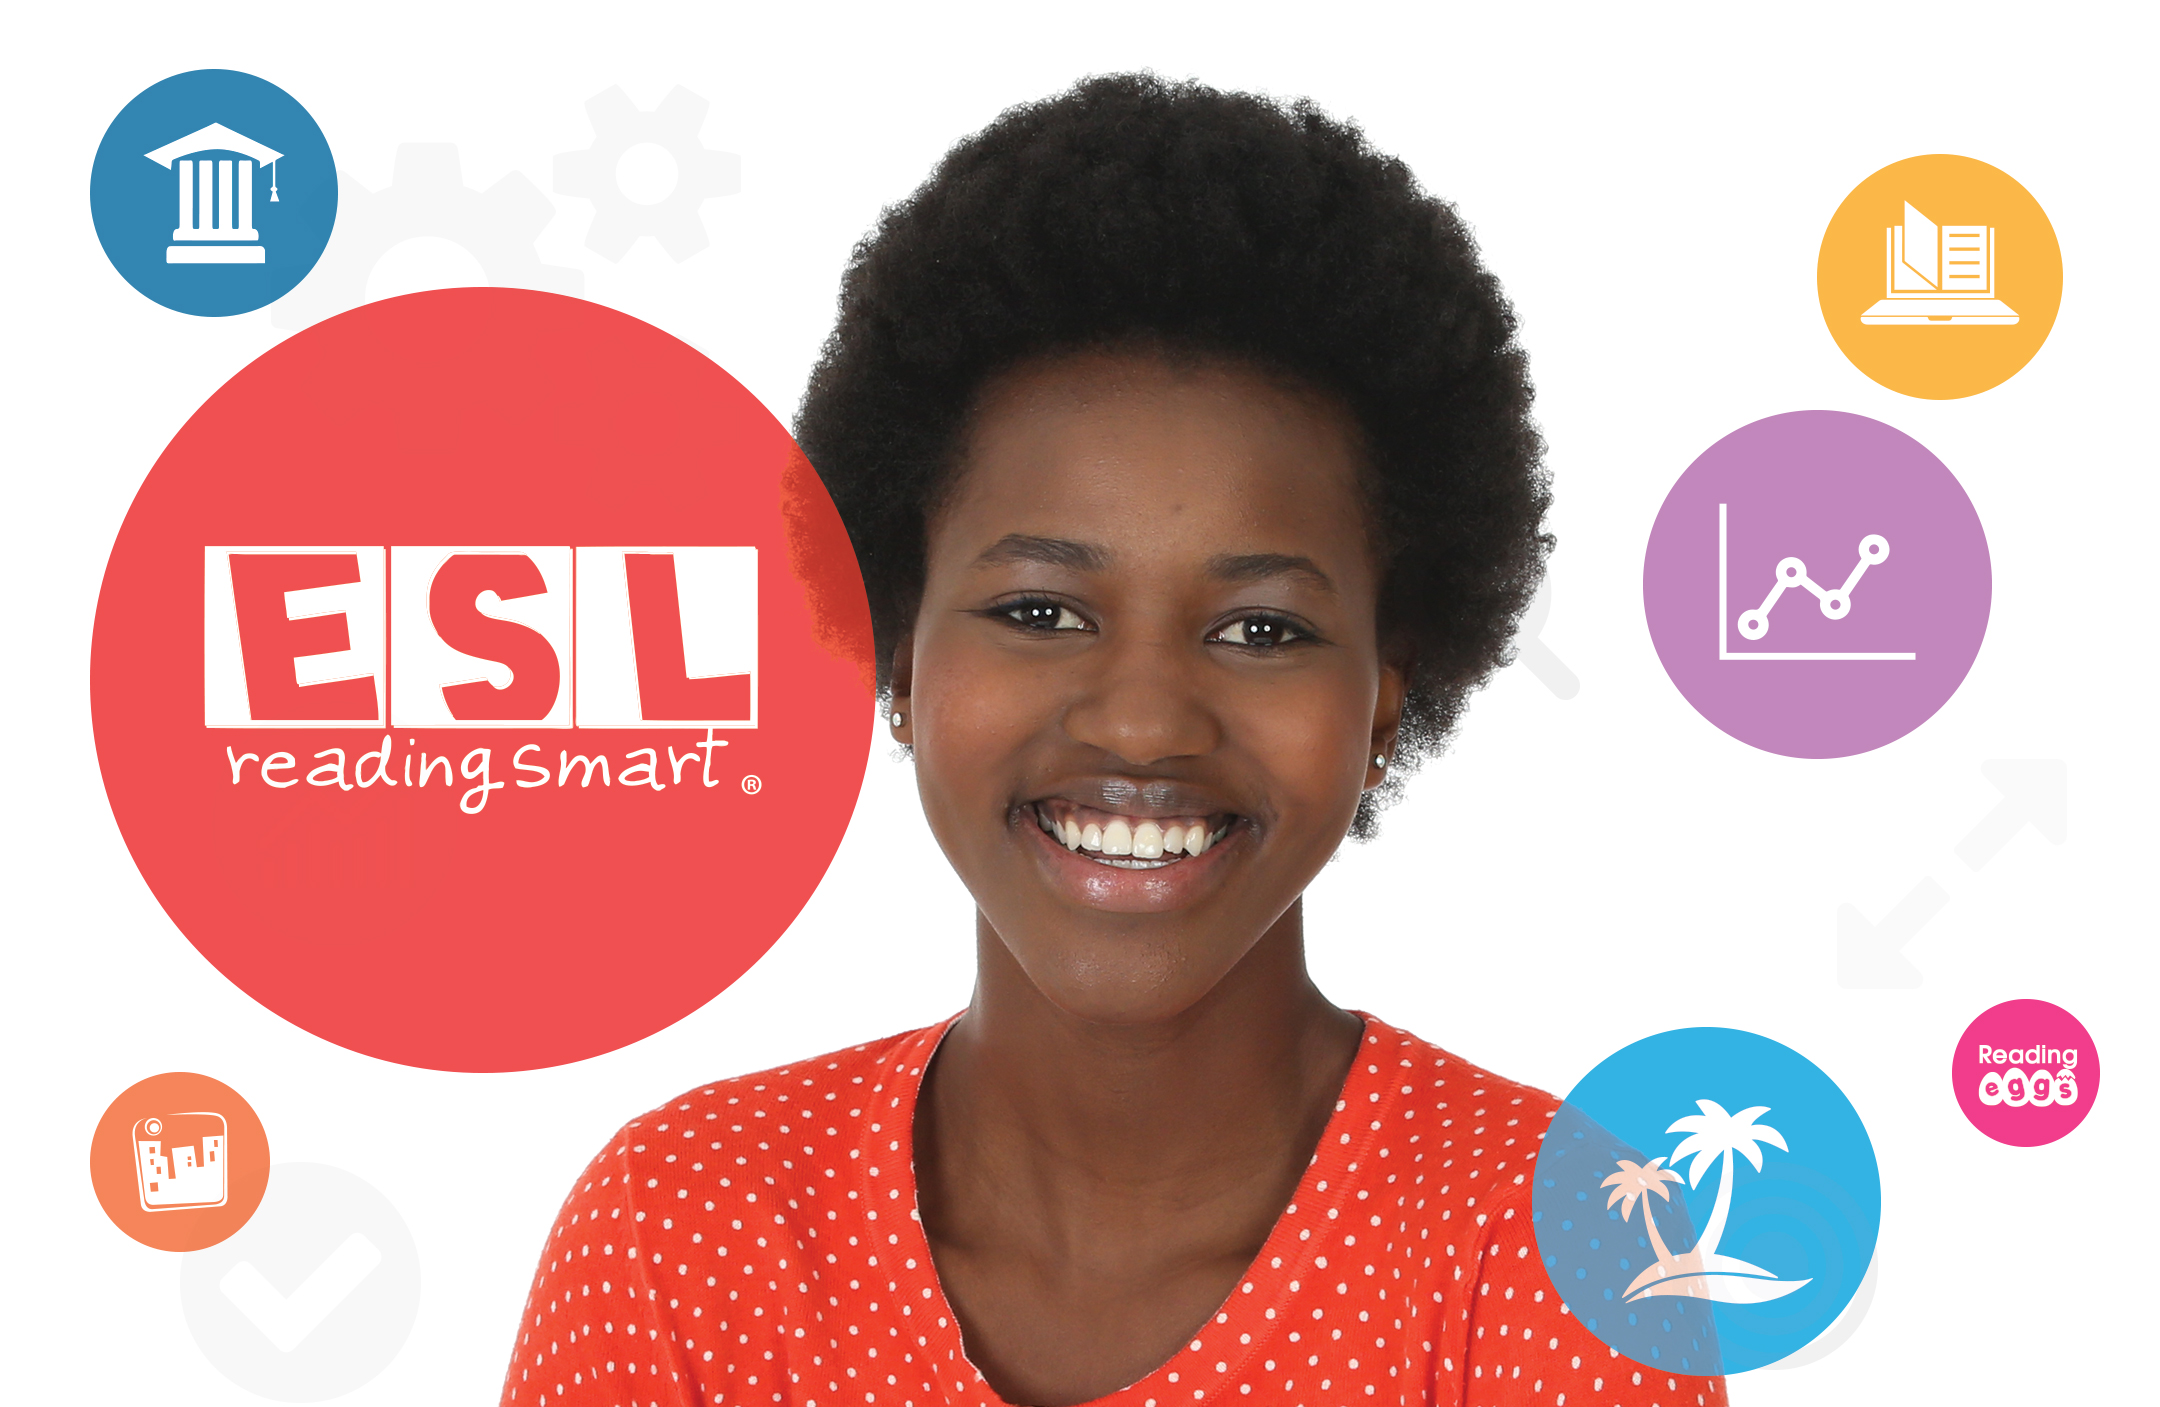 Image of student with ESL logo next to her.